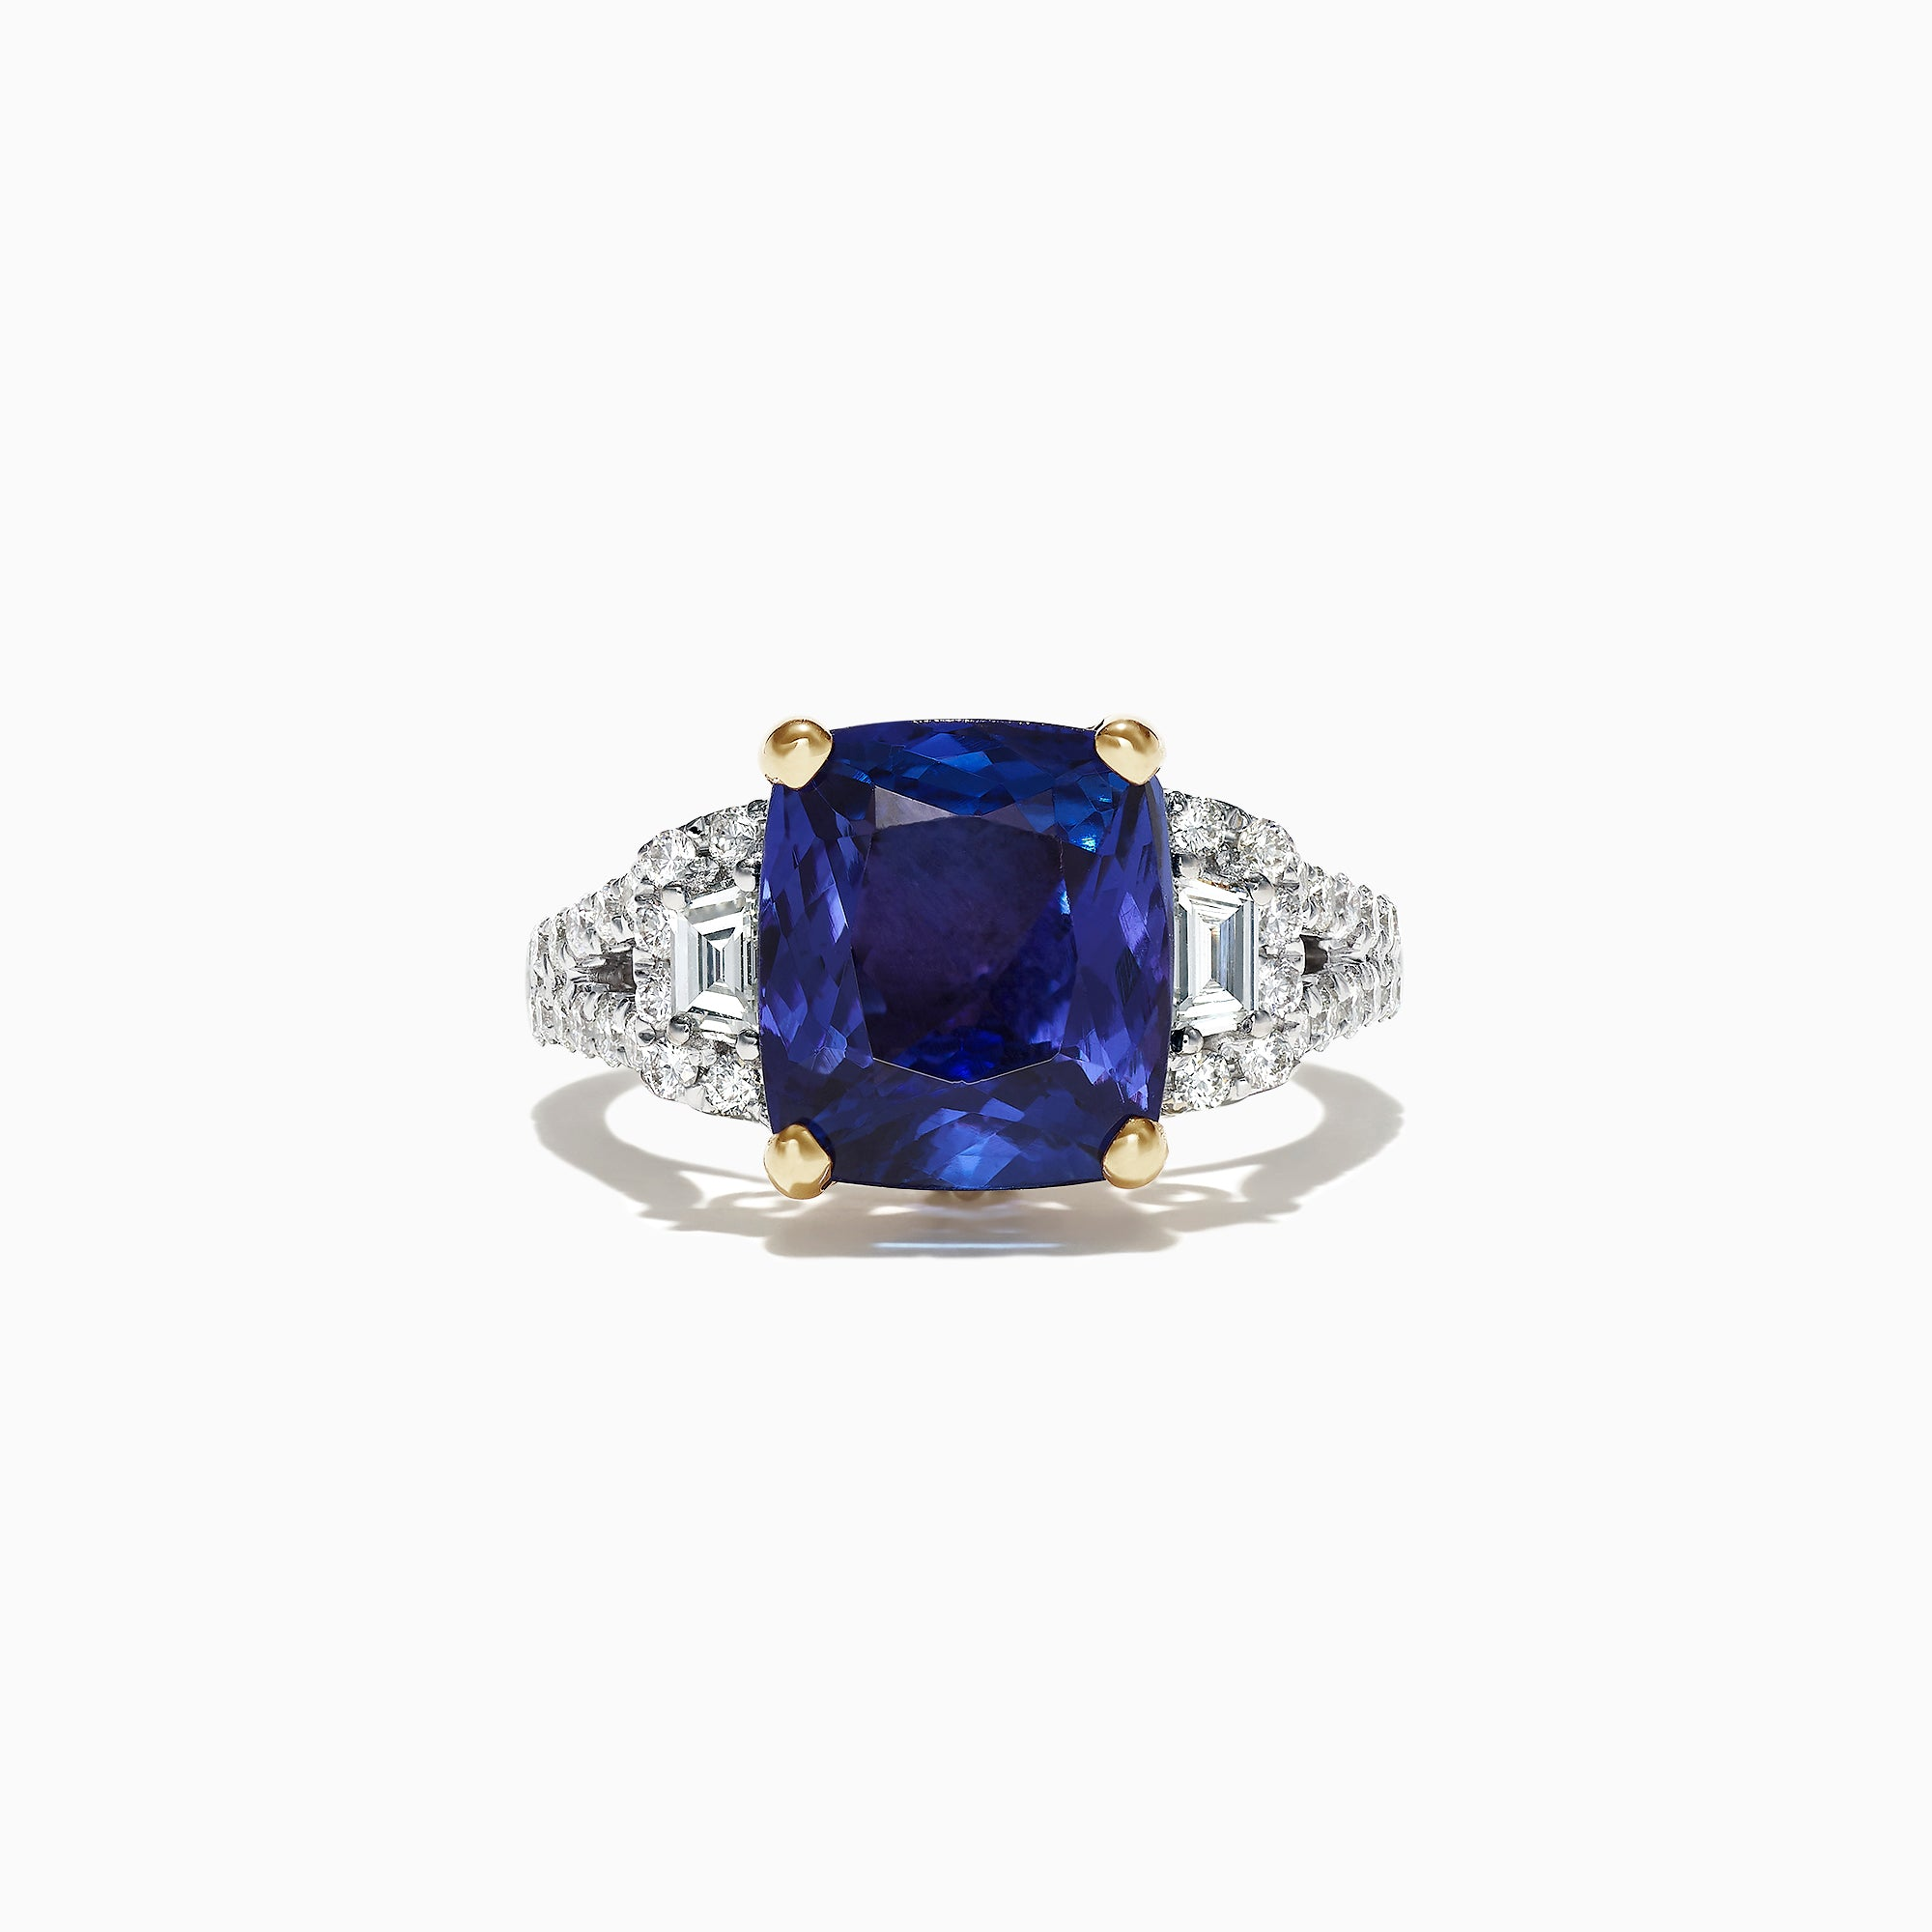 Effy Limited Edition 18K Two Tone Gold Tanzanite and Diamond Ring, 4.52 TCW